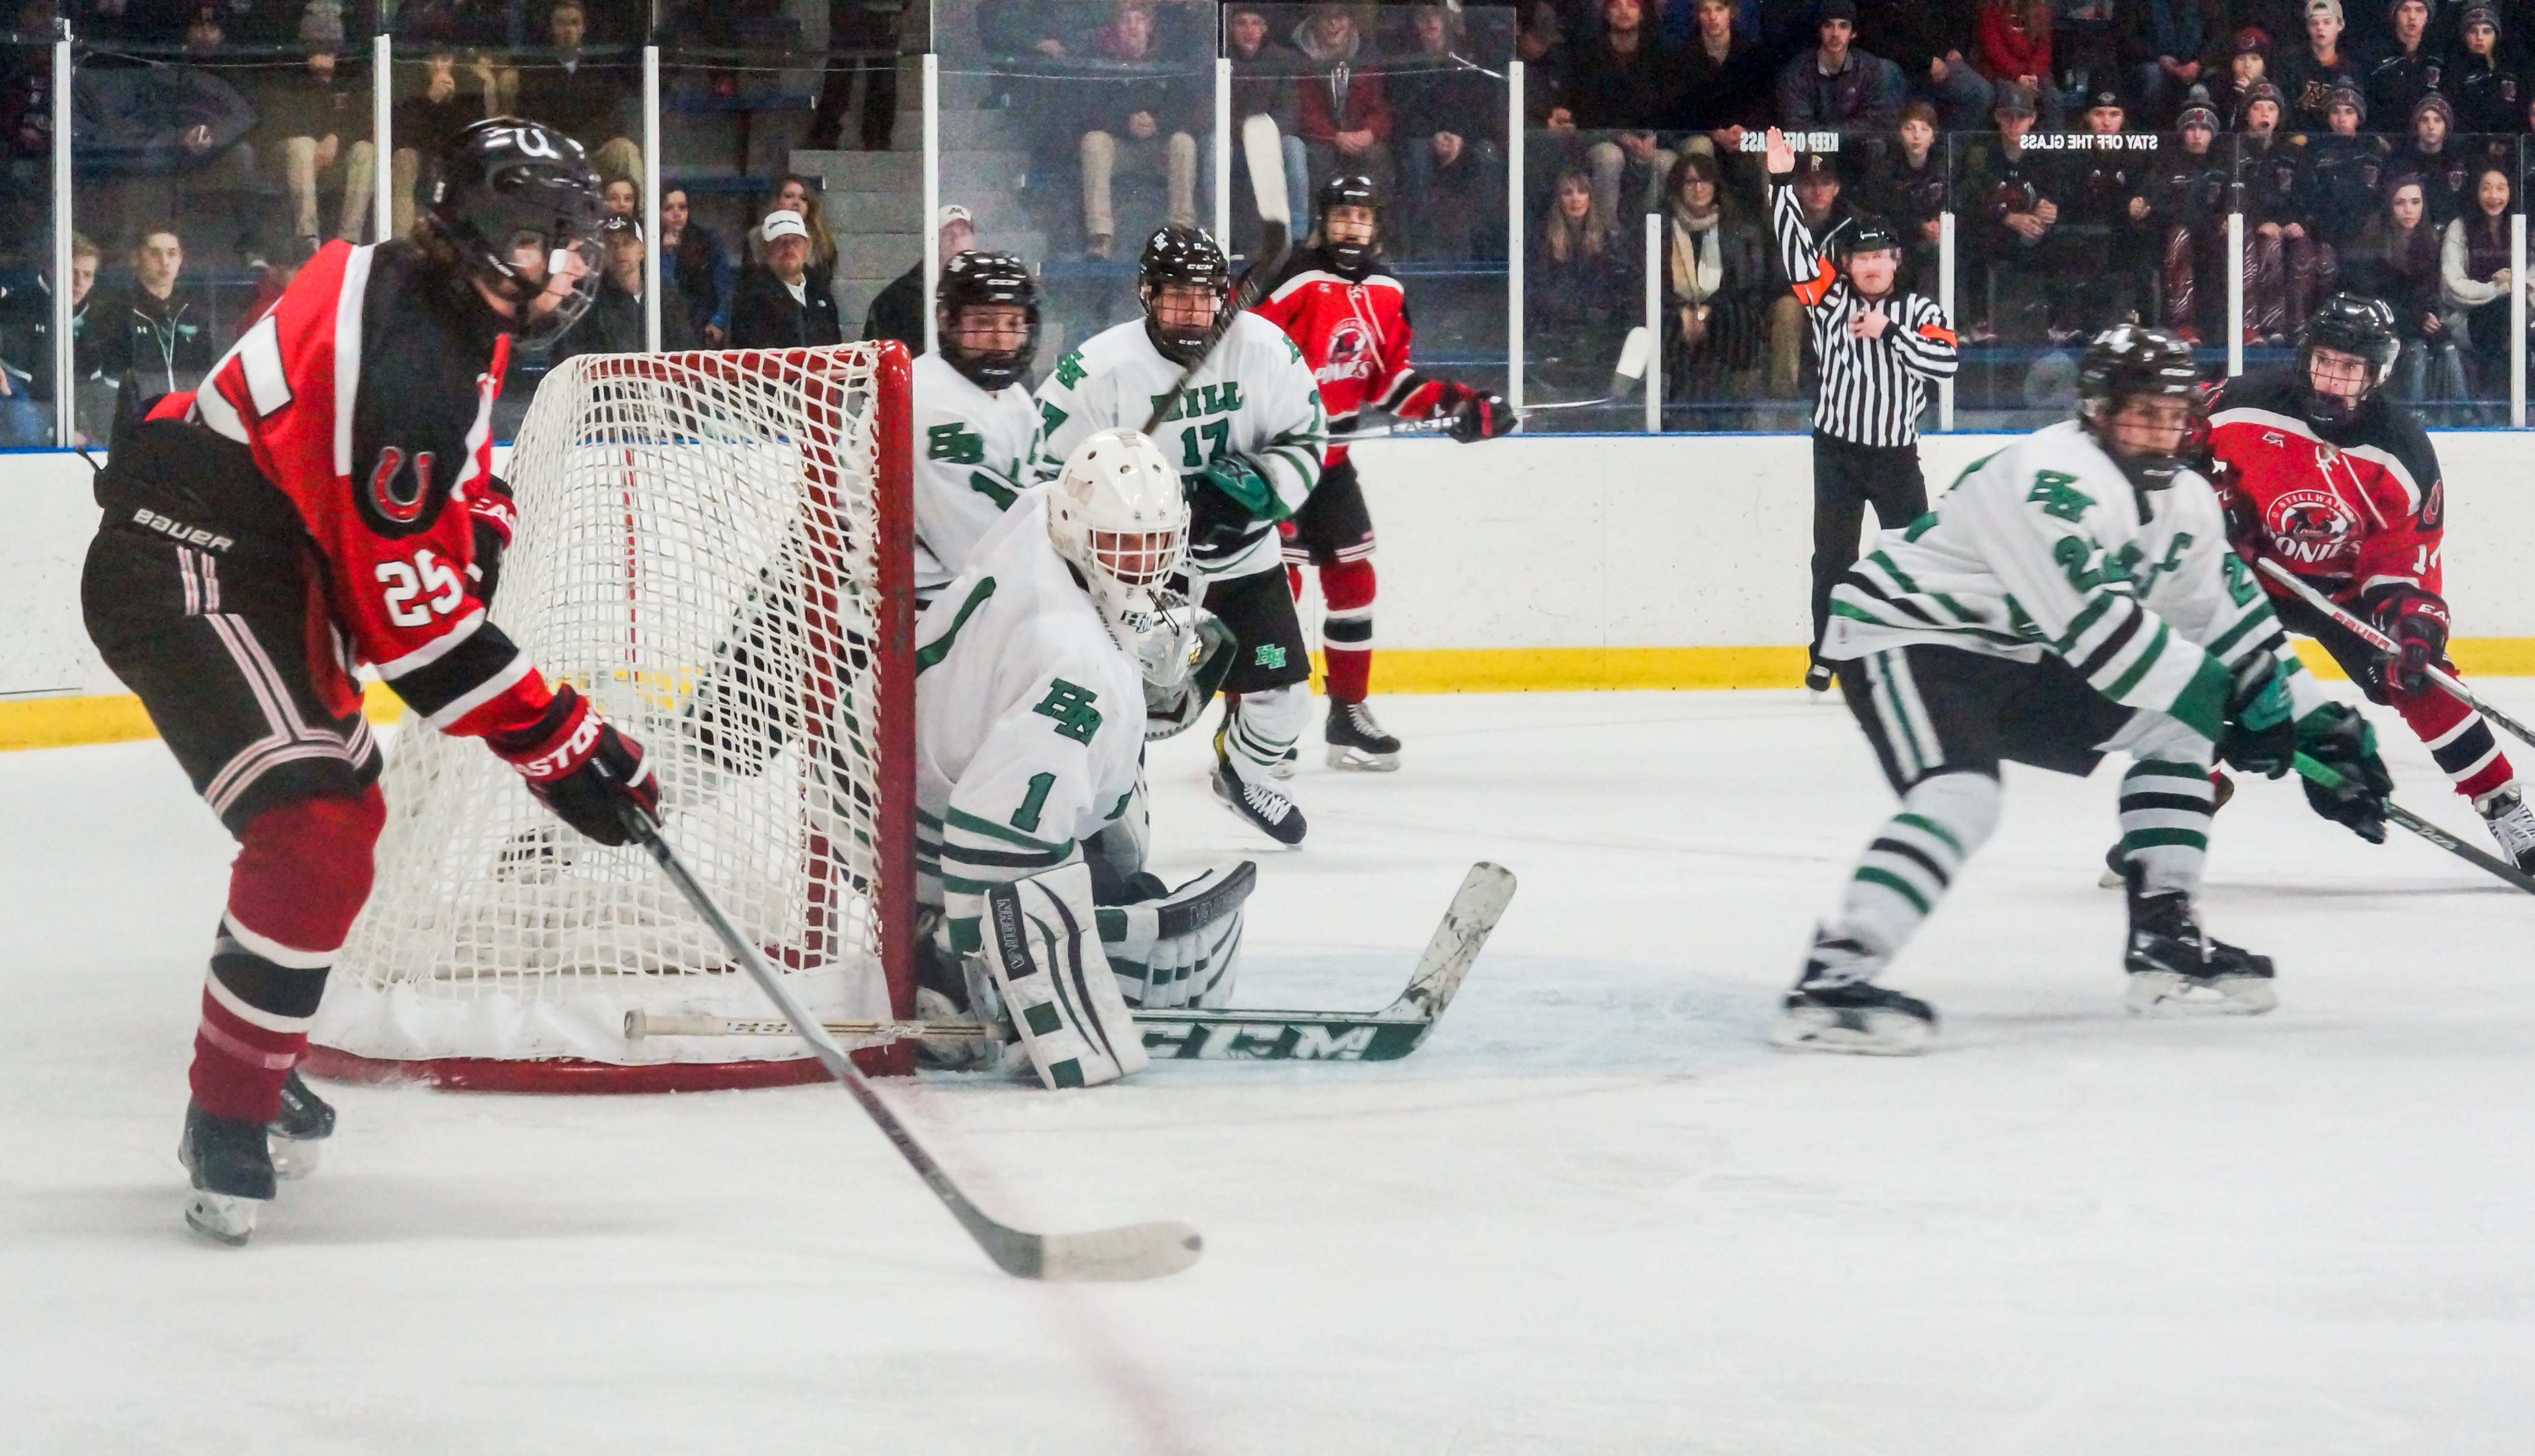 MN H.S.: Ponies Beat Hill-Murray In Likely Section Playoff Preview